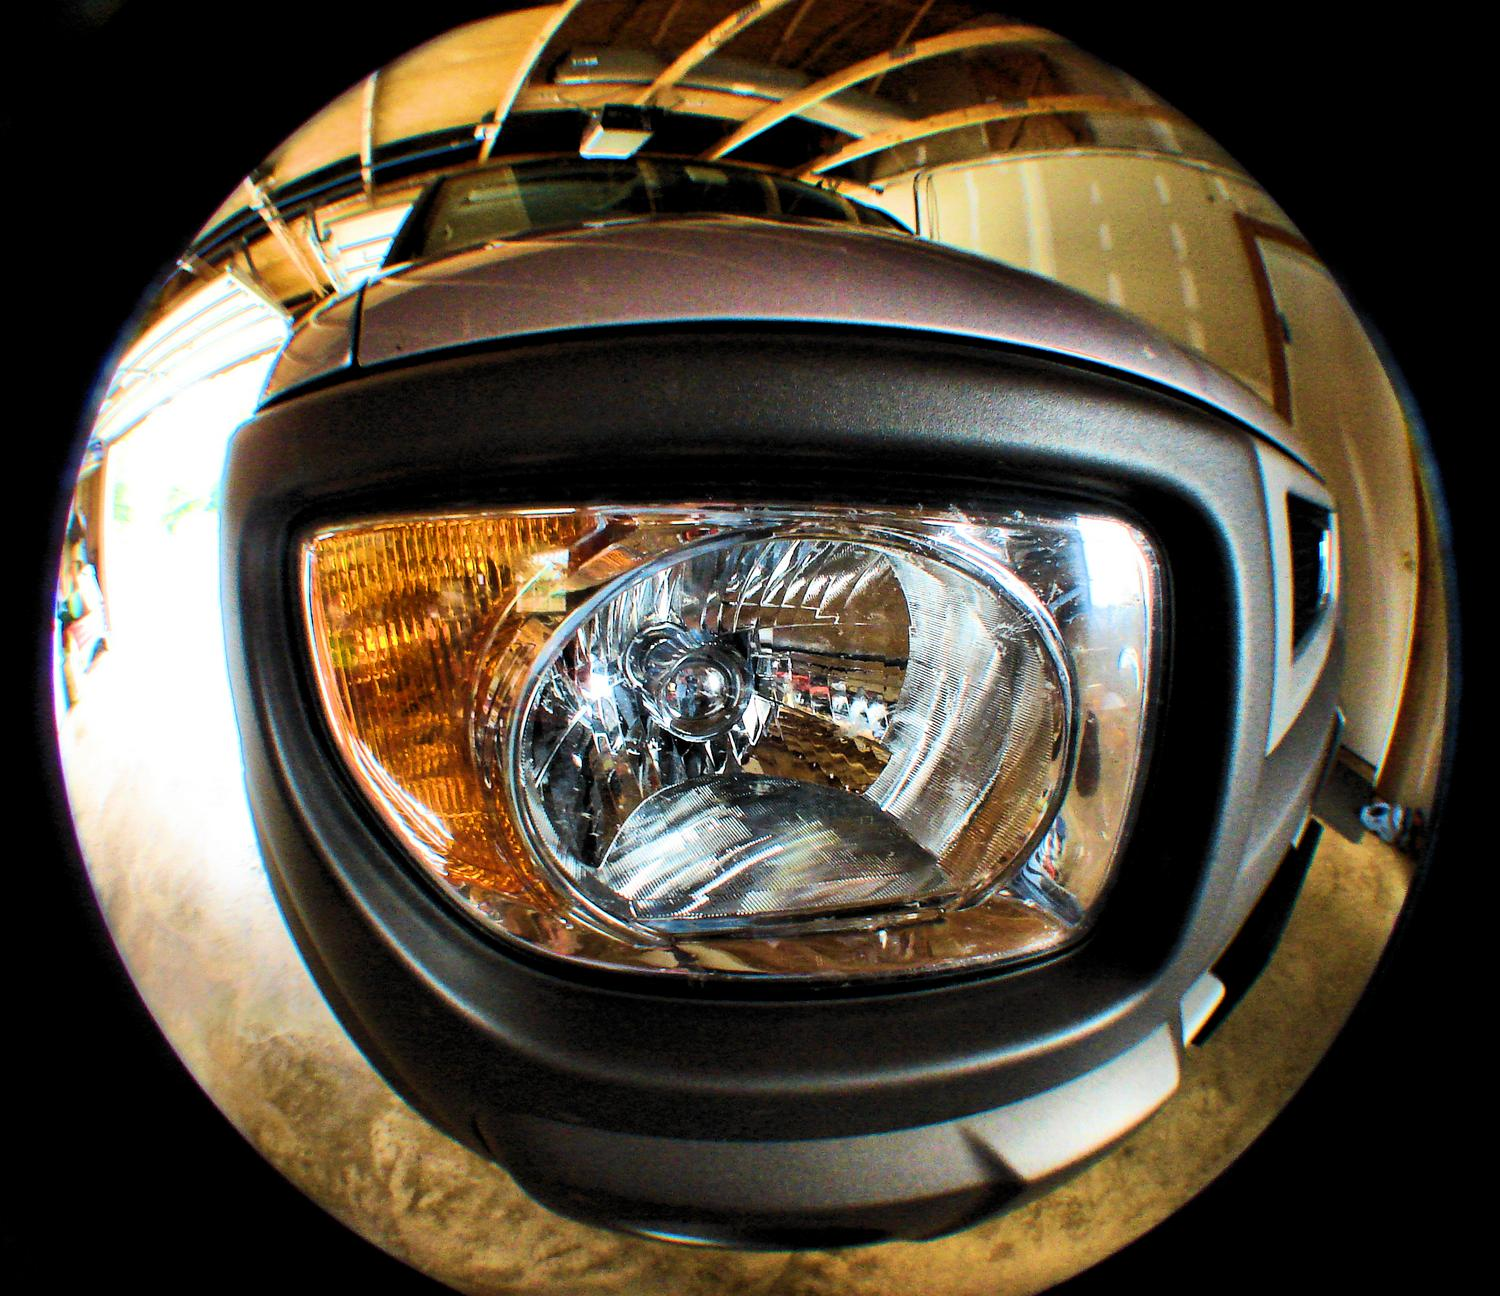 fisheye view of the front headlight of a Honda element - I bought my new car on the same day we bought the house - Tony Karp, design, art, photography, techno-impressionist, techno-impressionism, aerial photography , drone , drones , dji , mavic pro , video , 3D printing - Books -